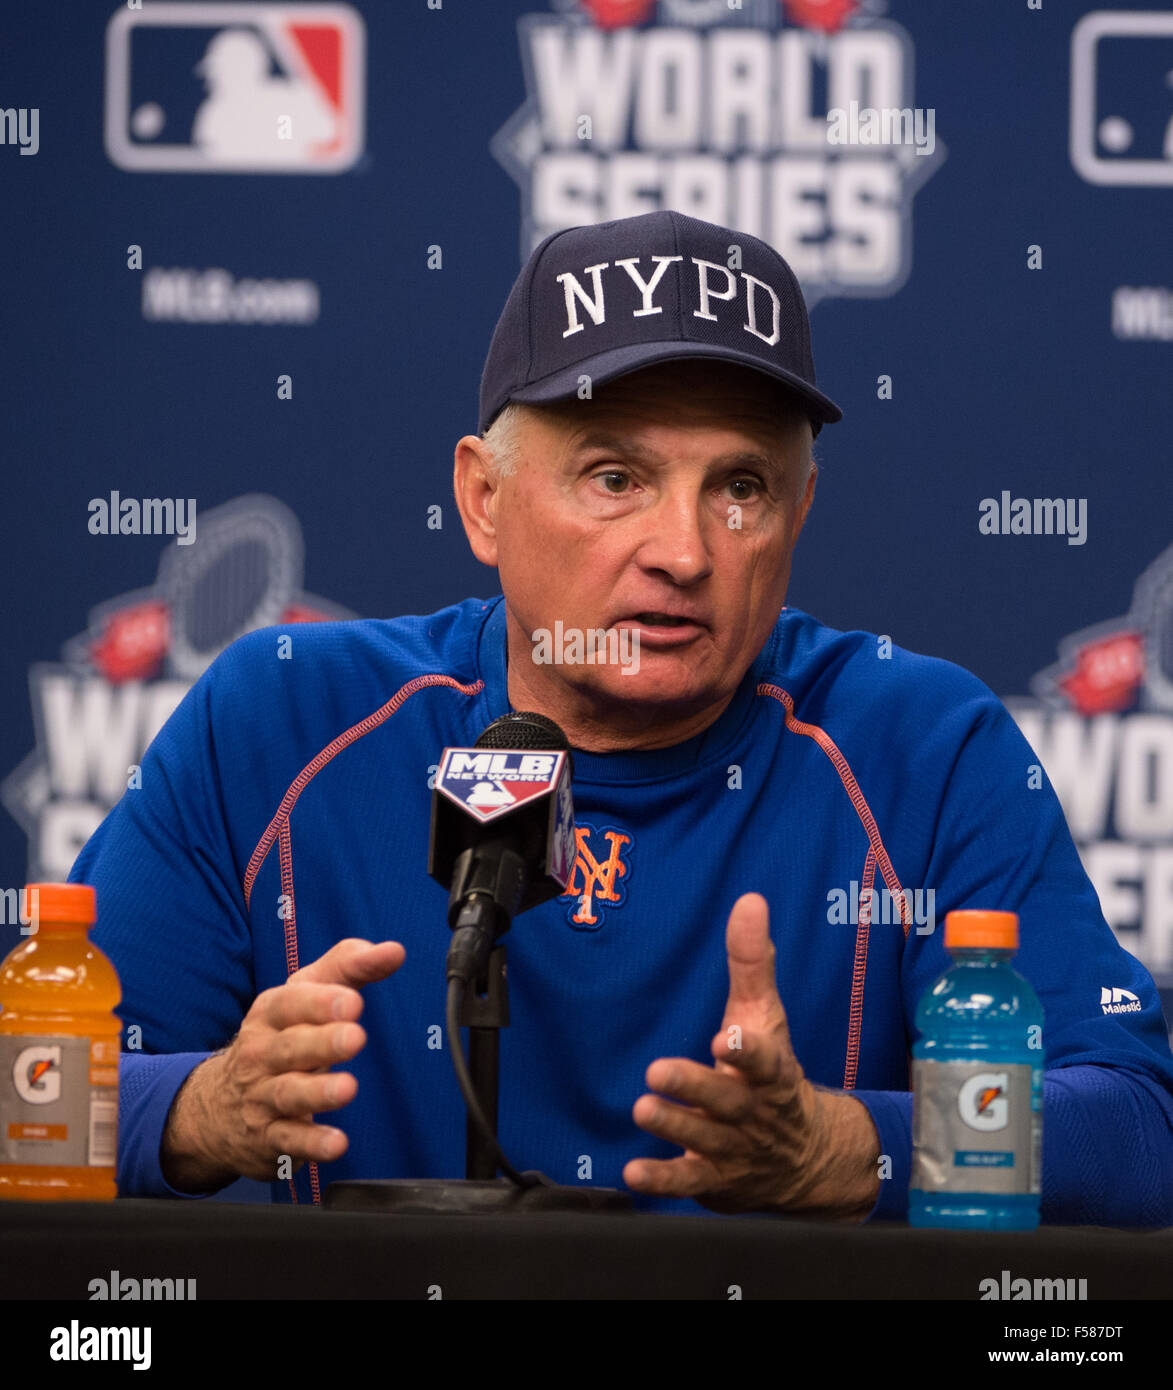 New York, NY, USA. 29th Oct, 2015. New York Mets manager TERRY COLLINS speaks at a press conference during World - Stock Image